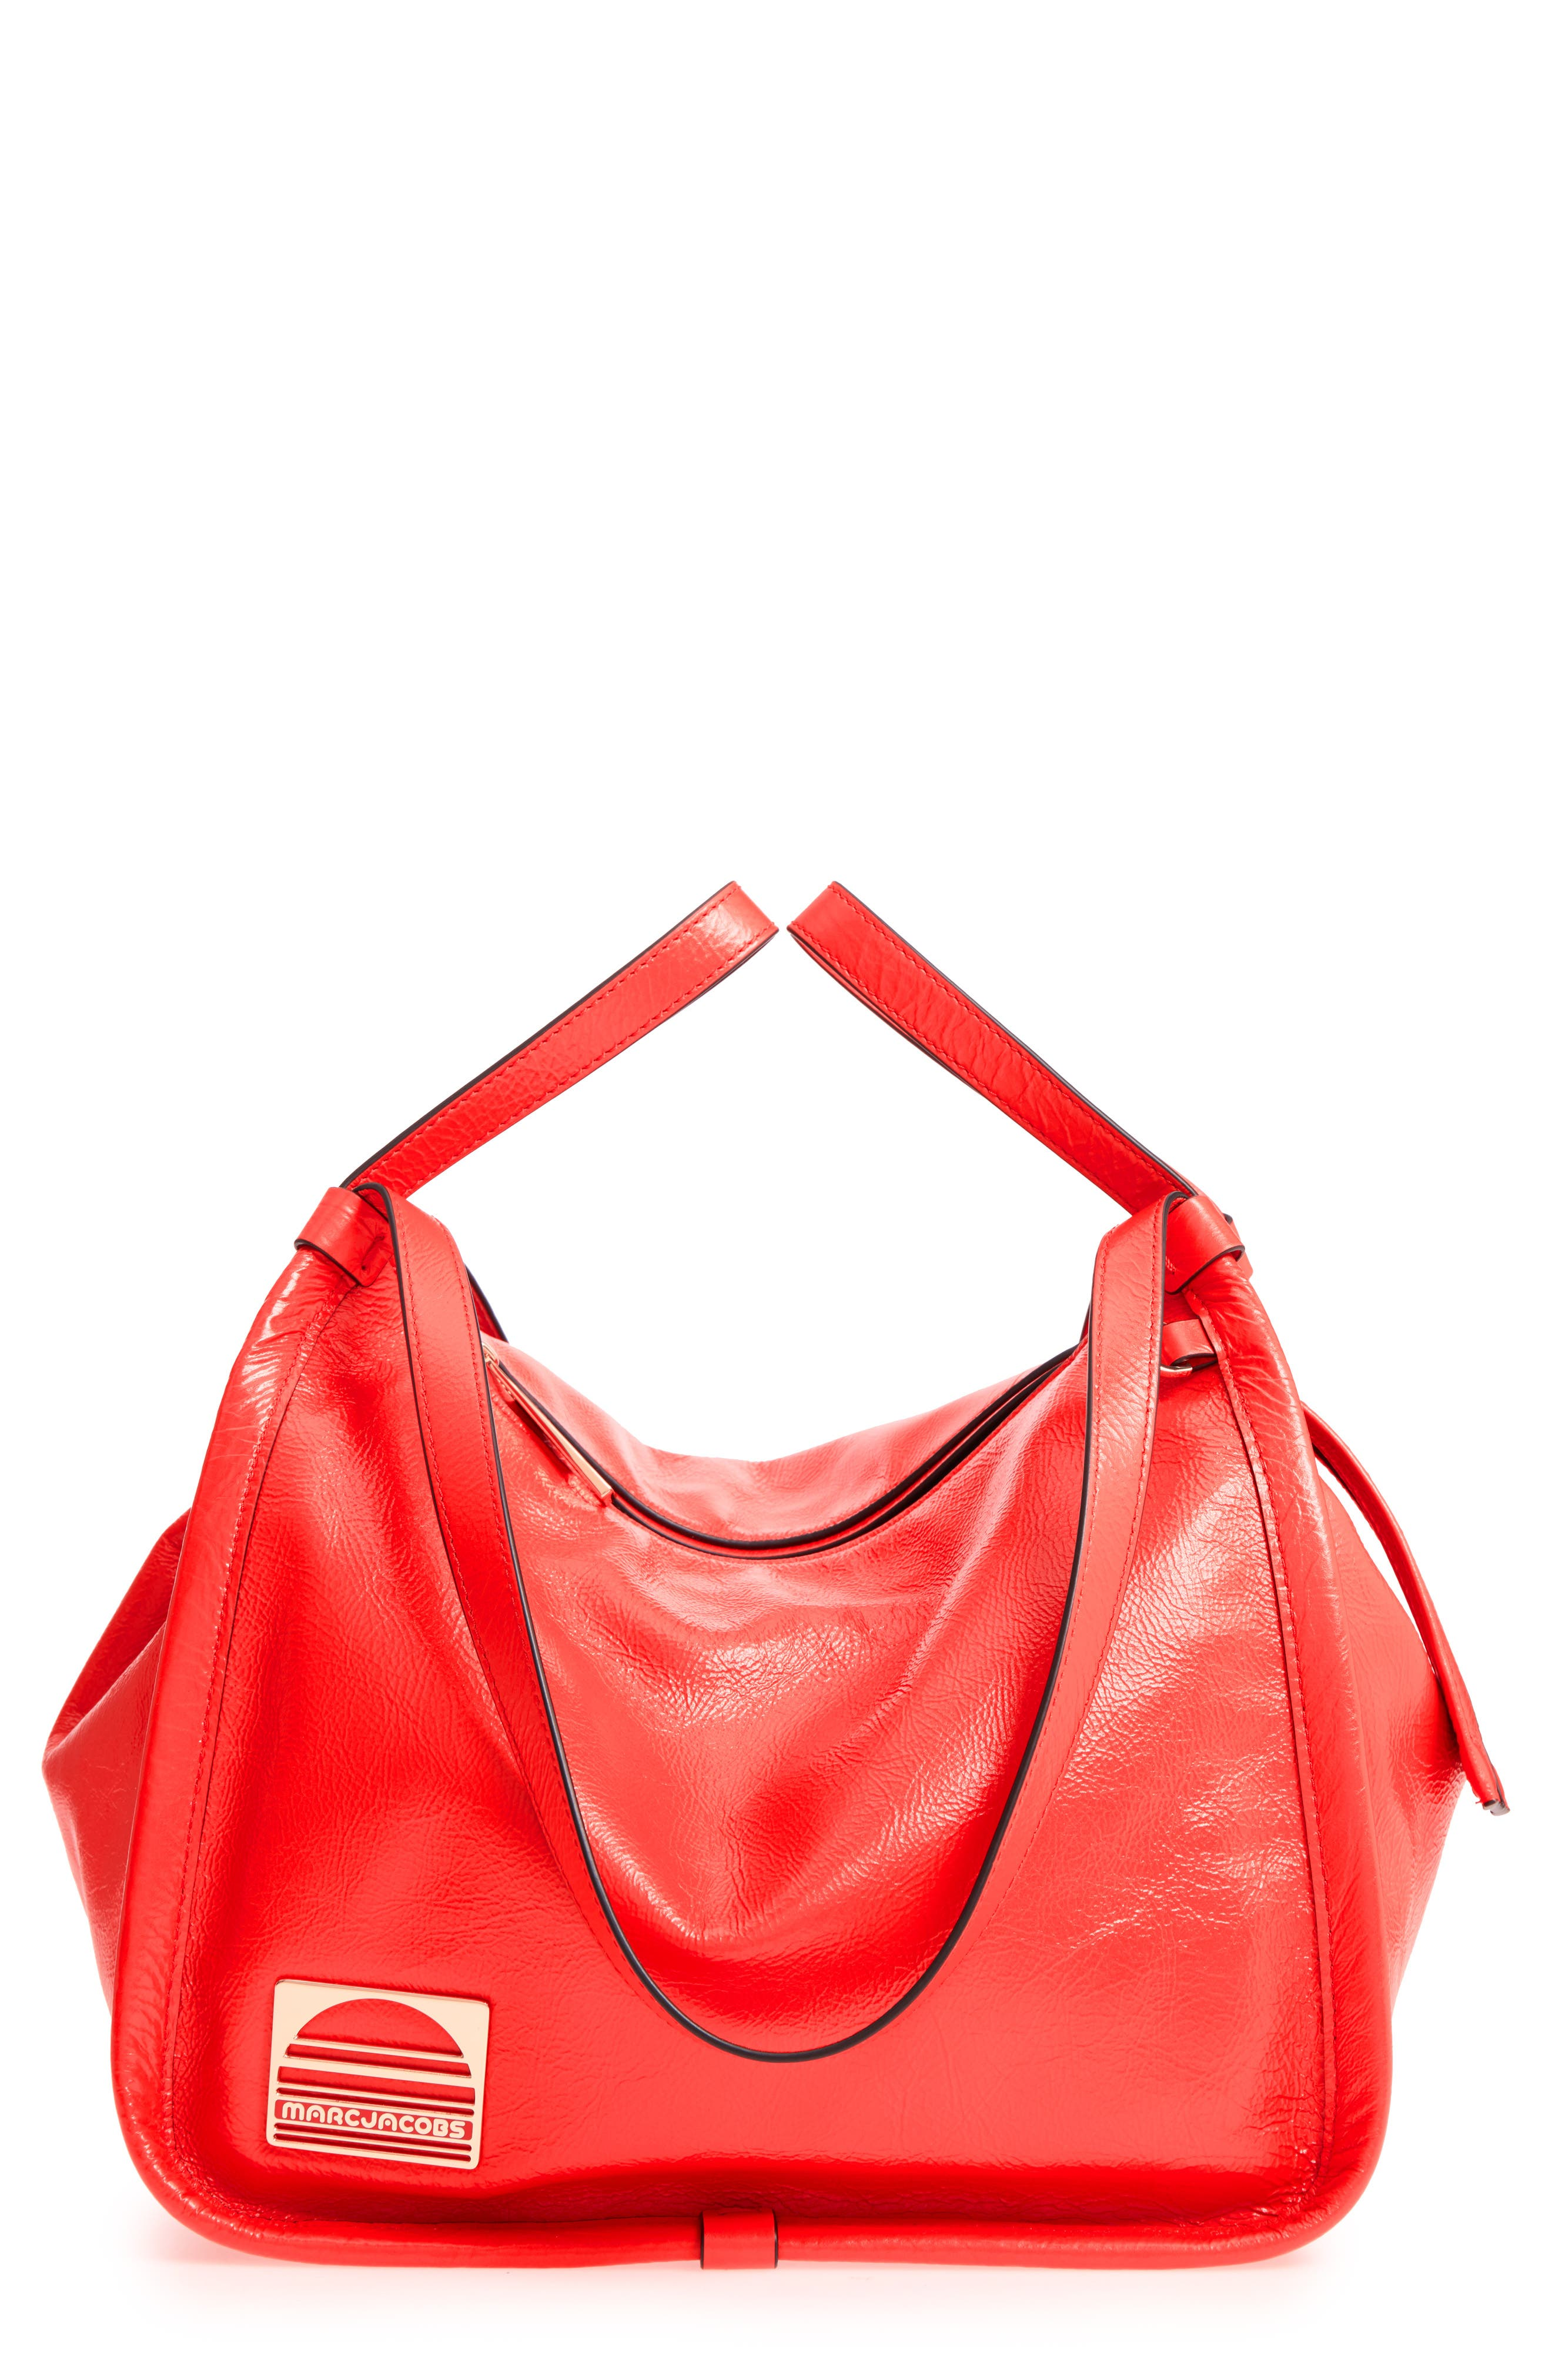 LEATHER SPORT TOTE - RED